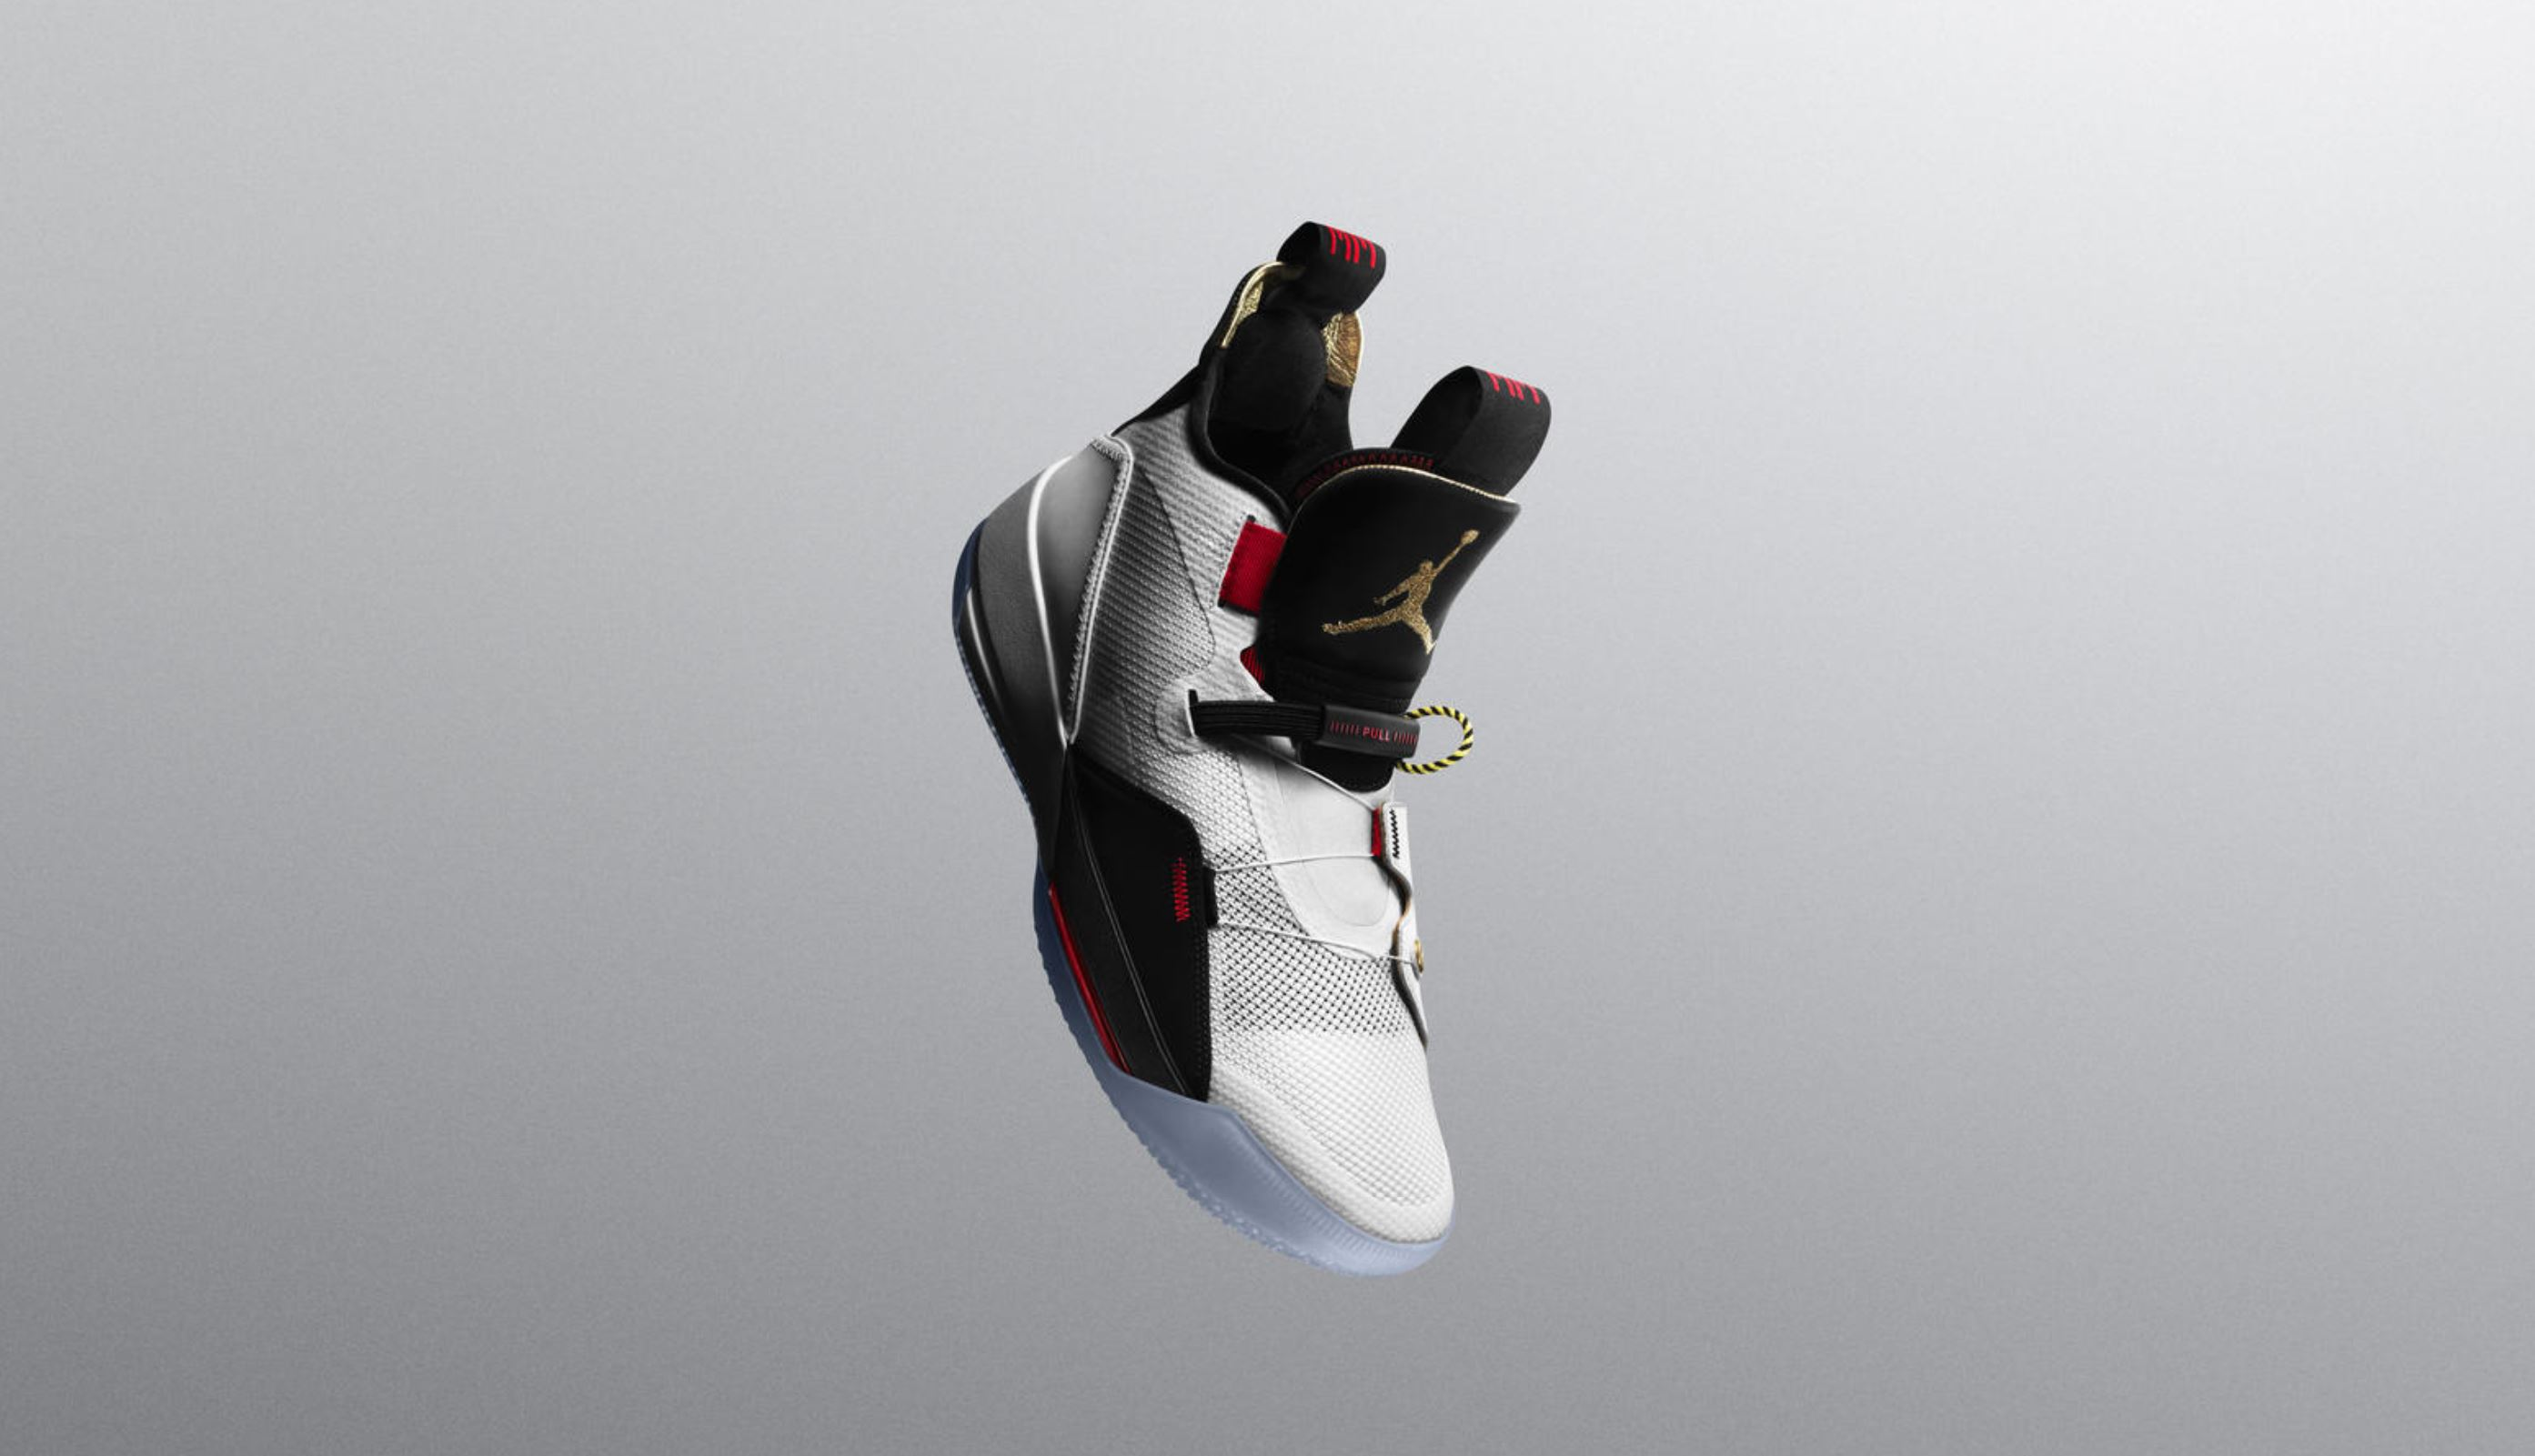 898953dd080 The Air Jordan 33 Introduces the FastFit System and Flight Utility ...